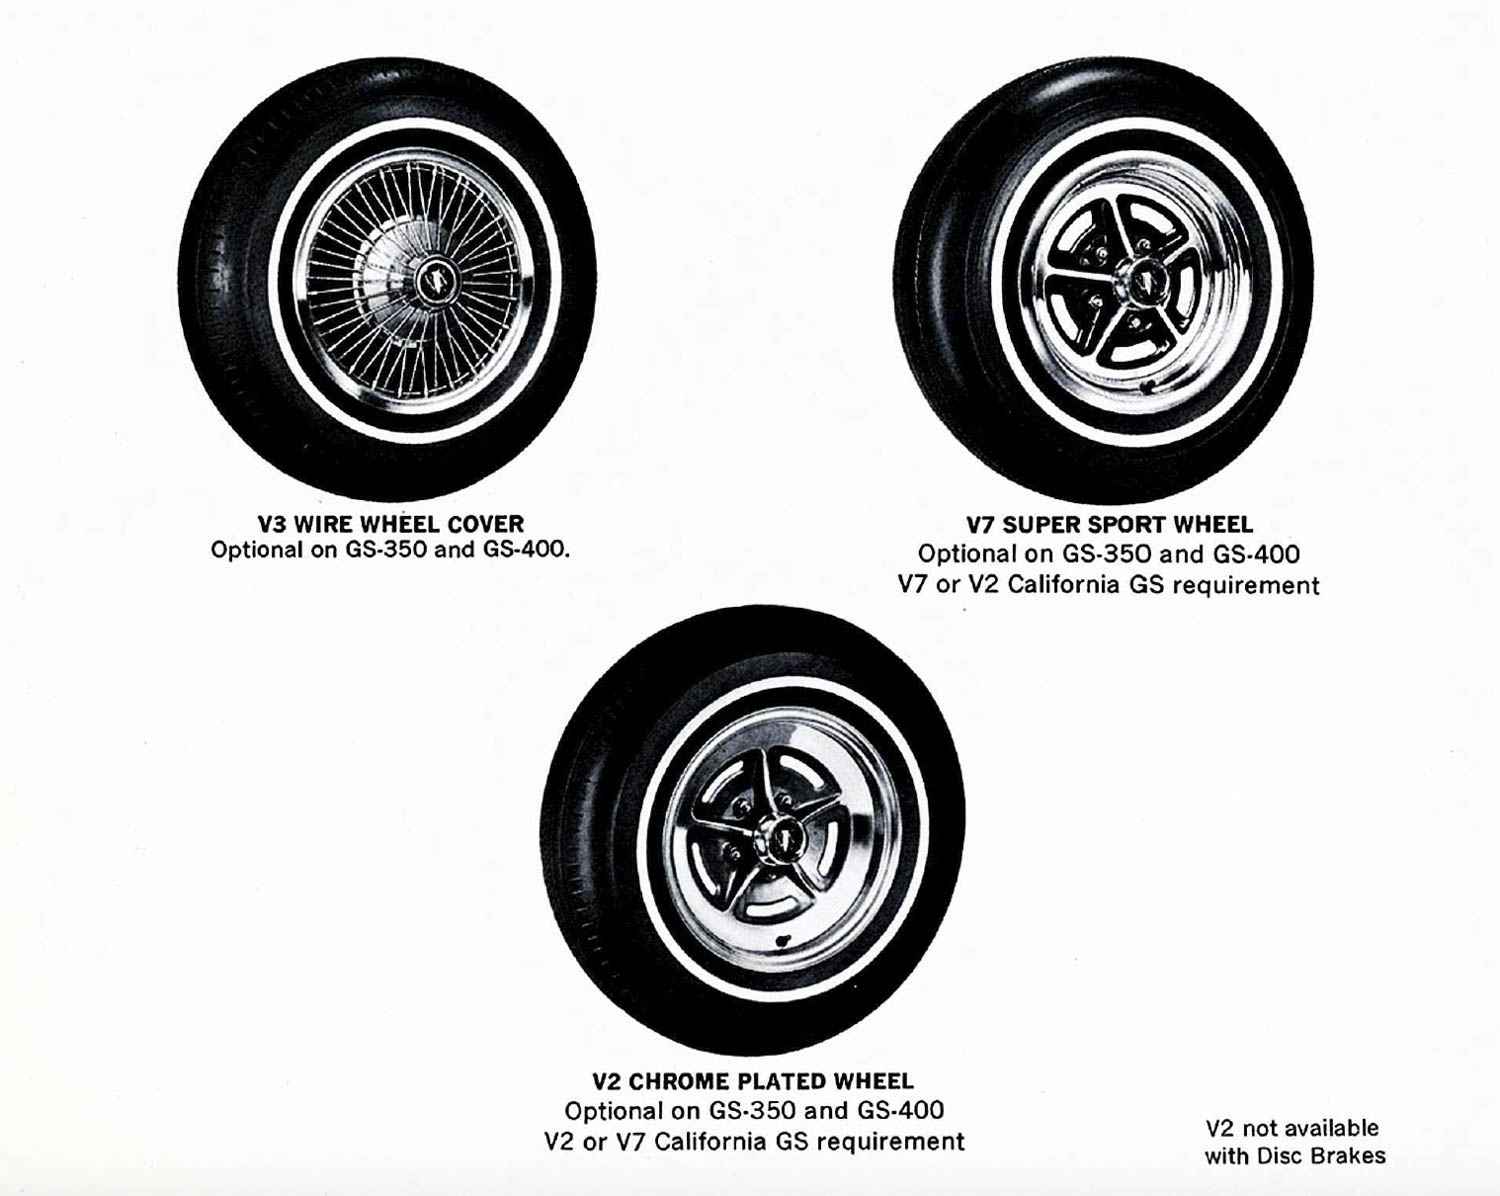 1969 Buick Dealer wheel options